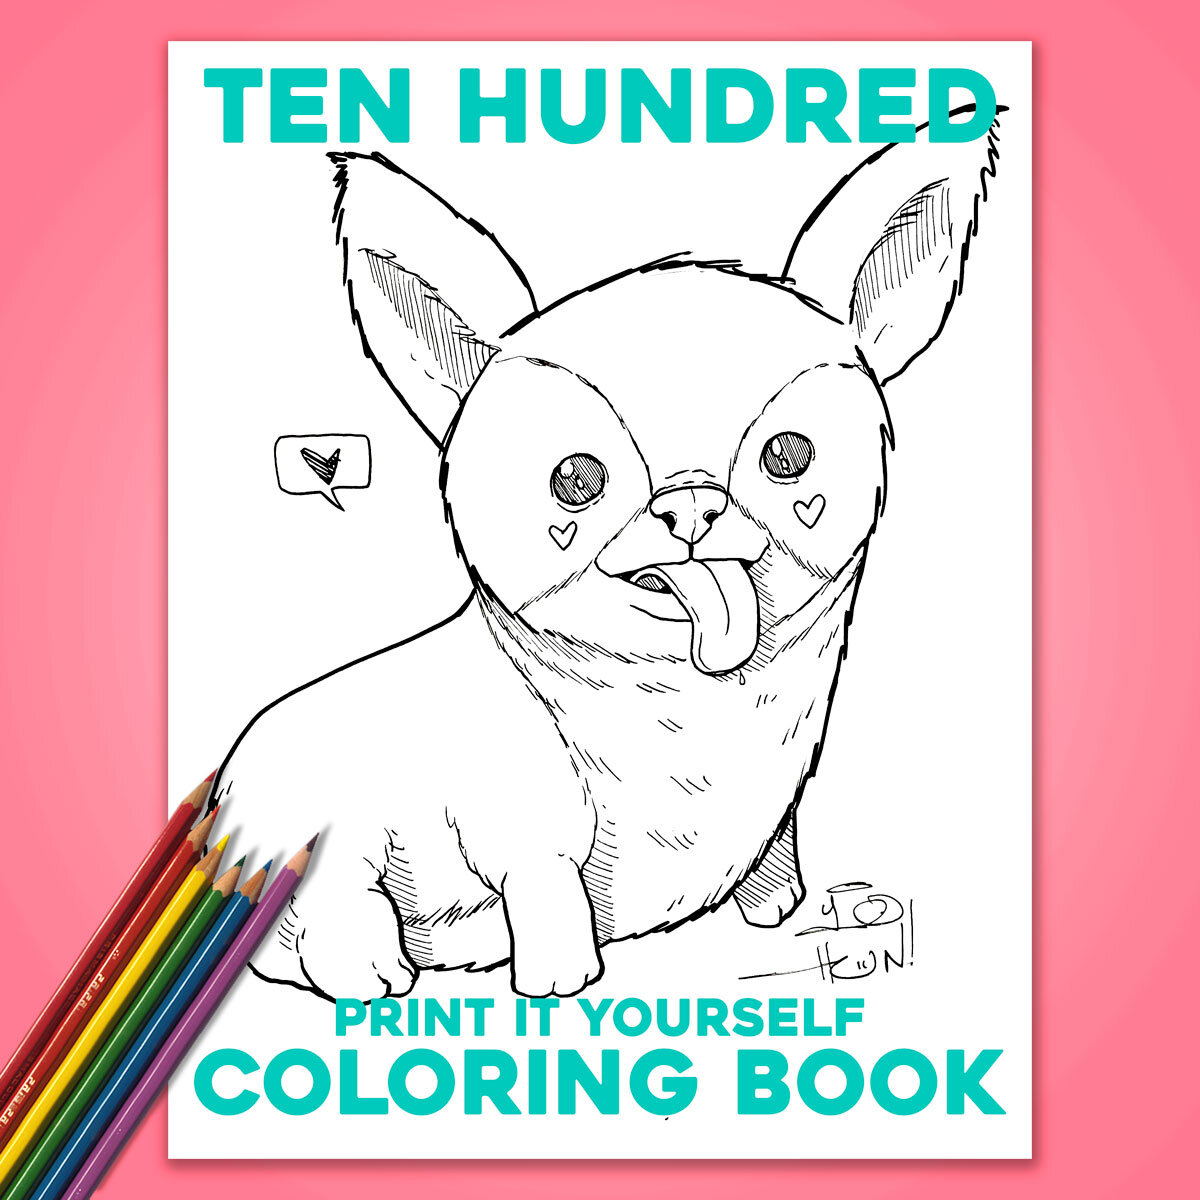 Coloring Book Free Print It Yourself Digital Download Ten Hundred